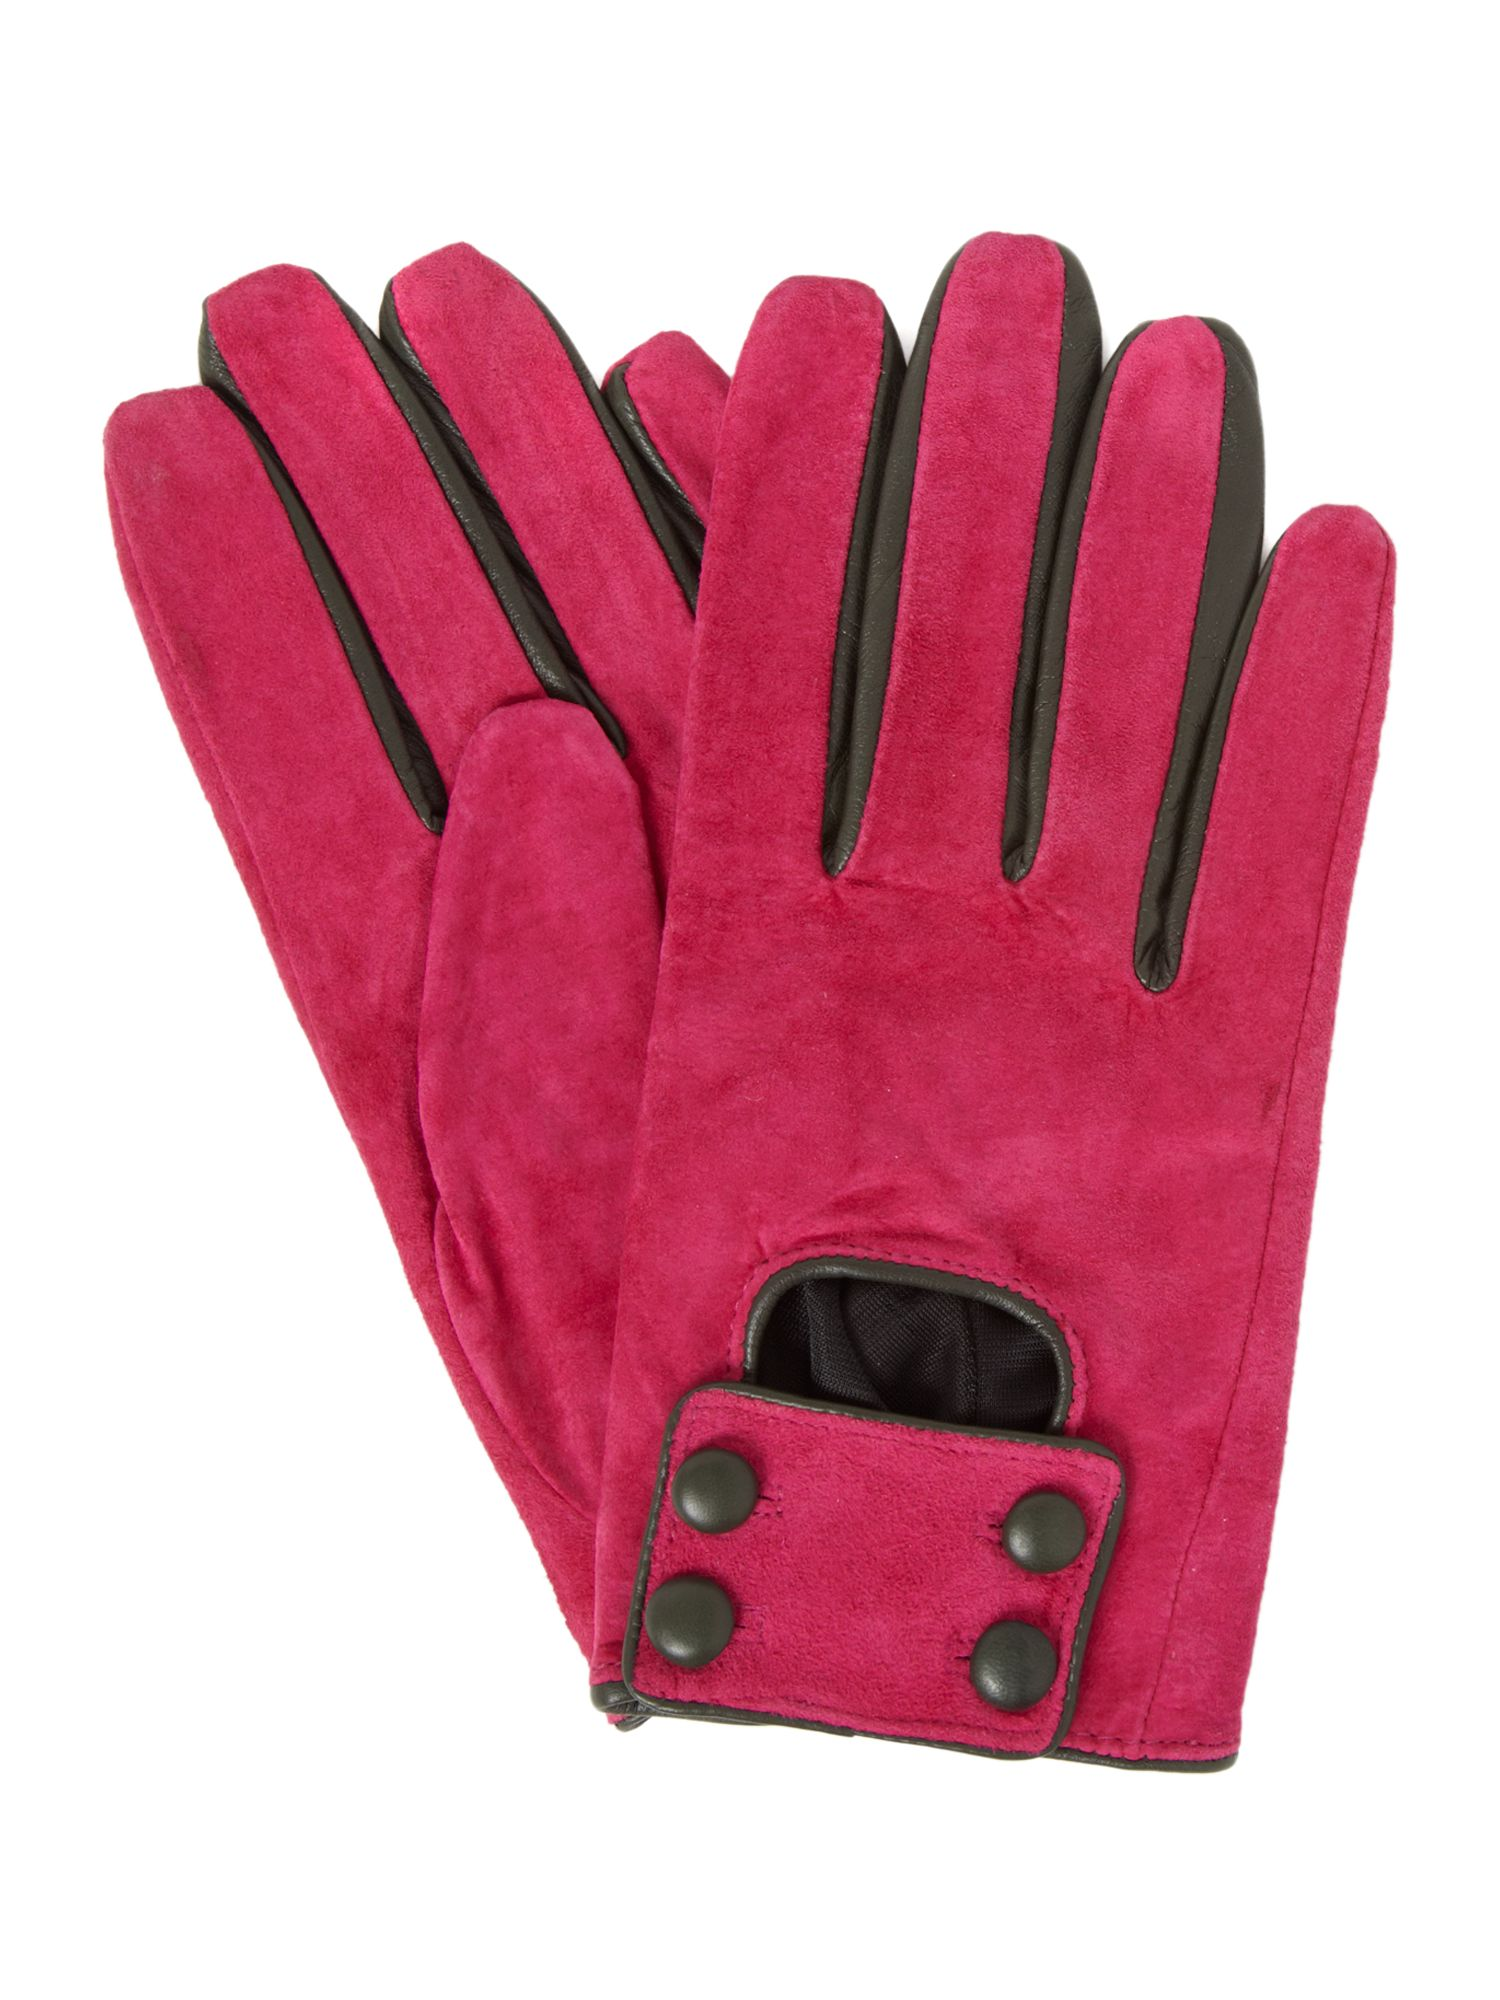 Suede glove with button detail